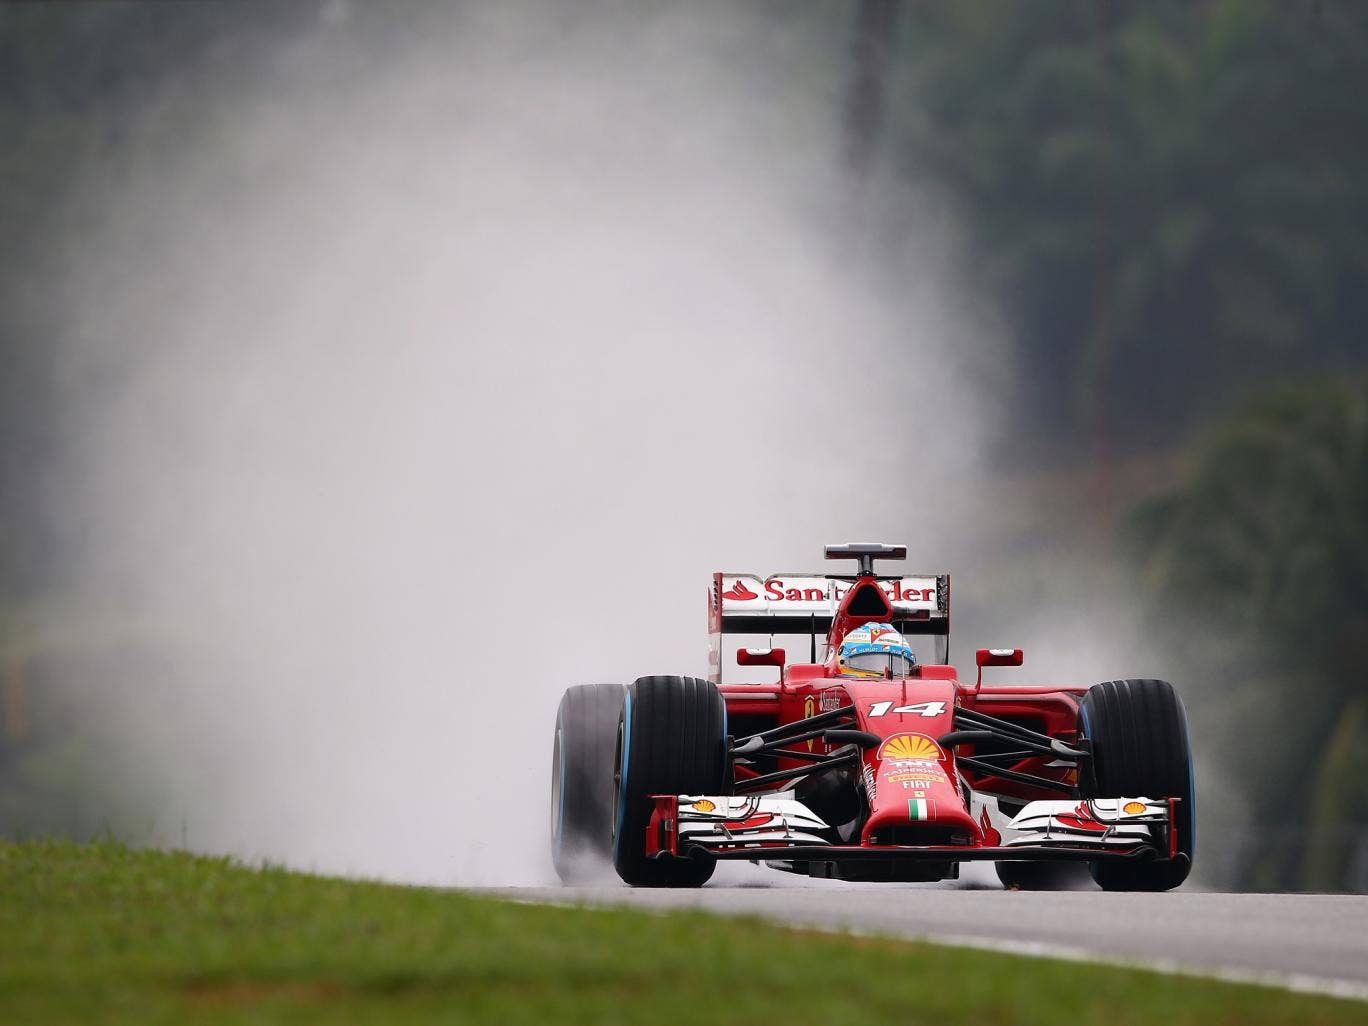 Fernando Alonso thanked his Ferrari mechanics for a rapid repair in the Malaysian Grand Prix qualifying session